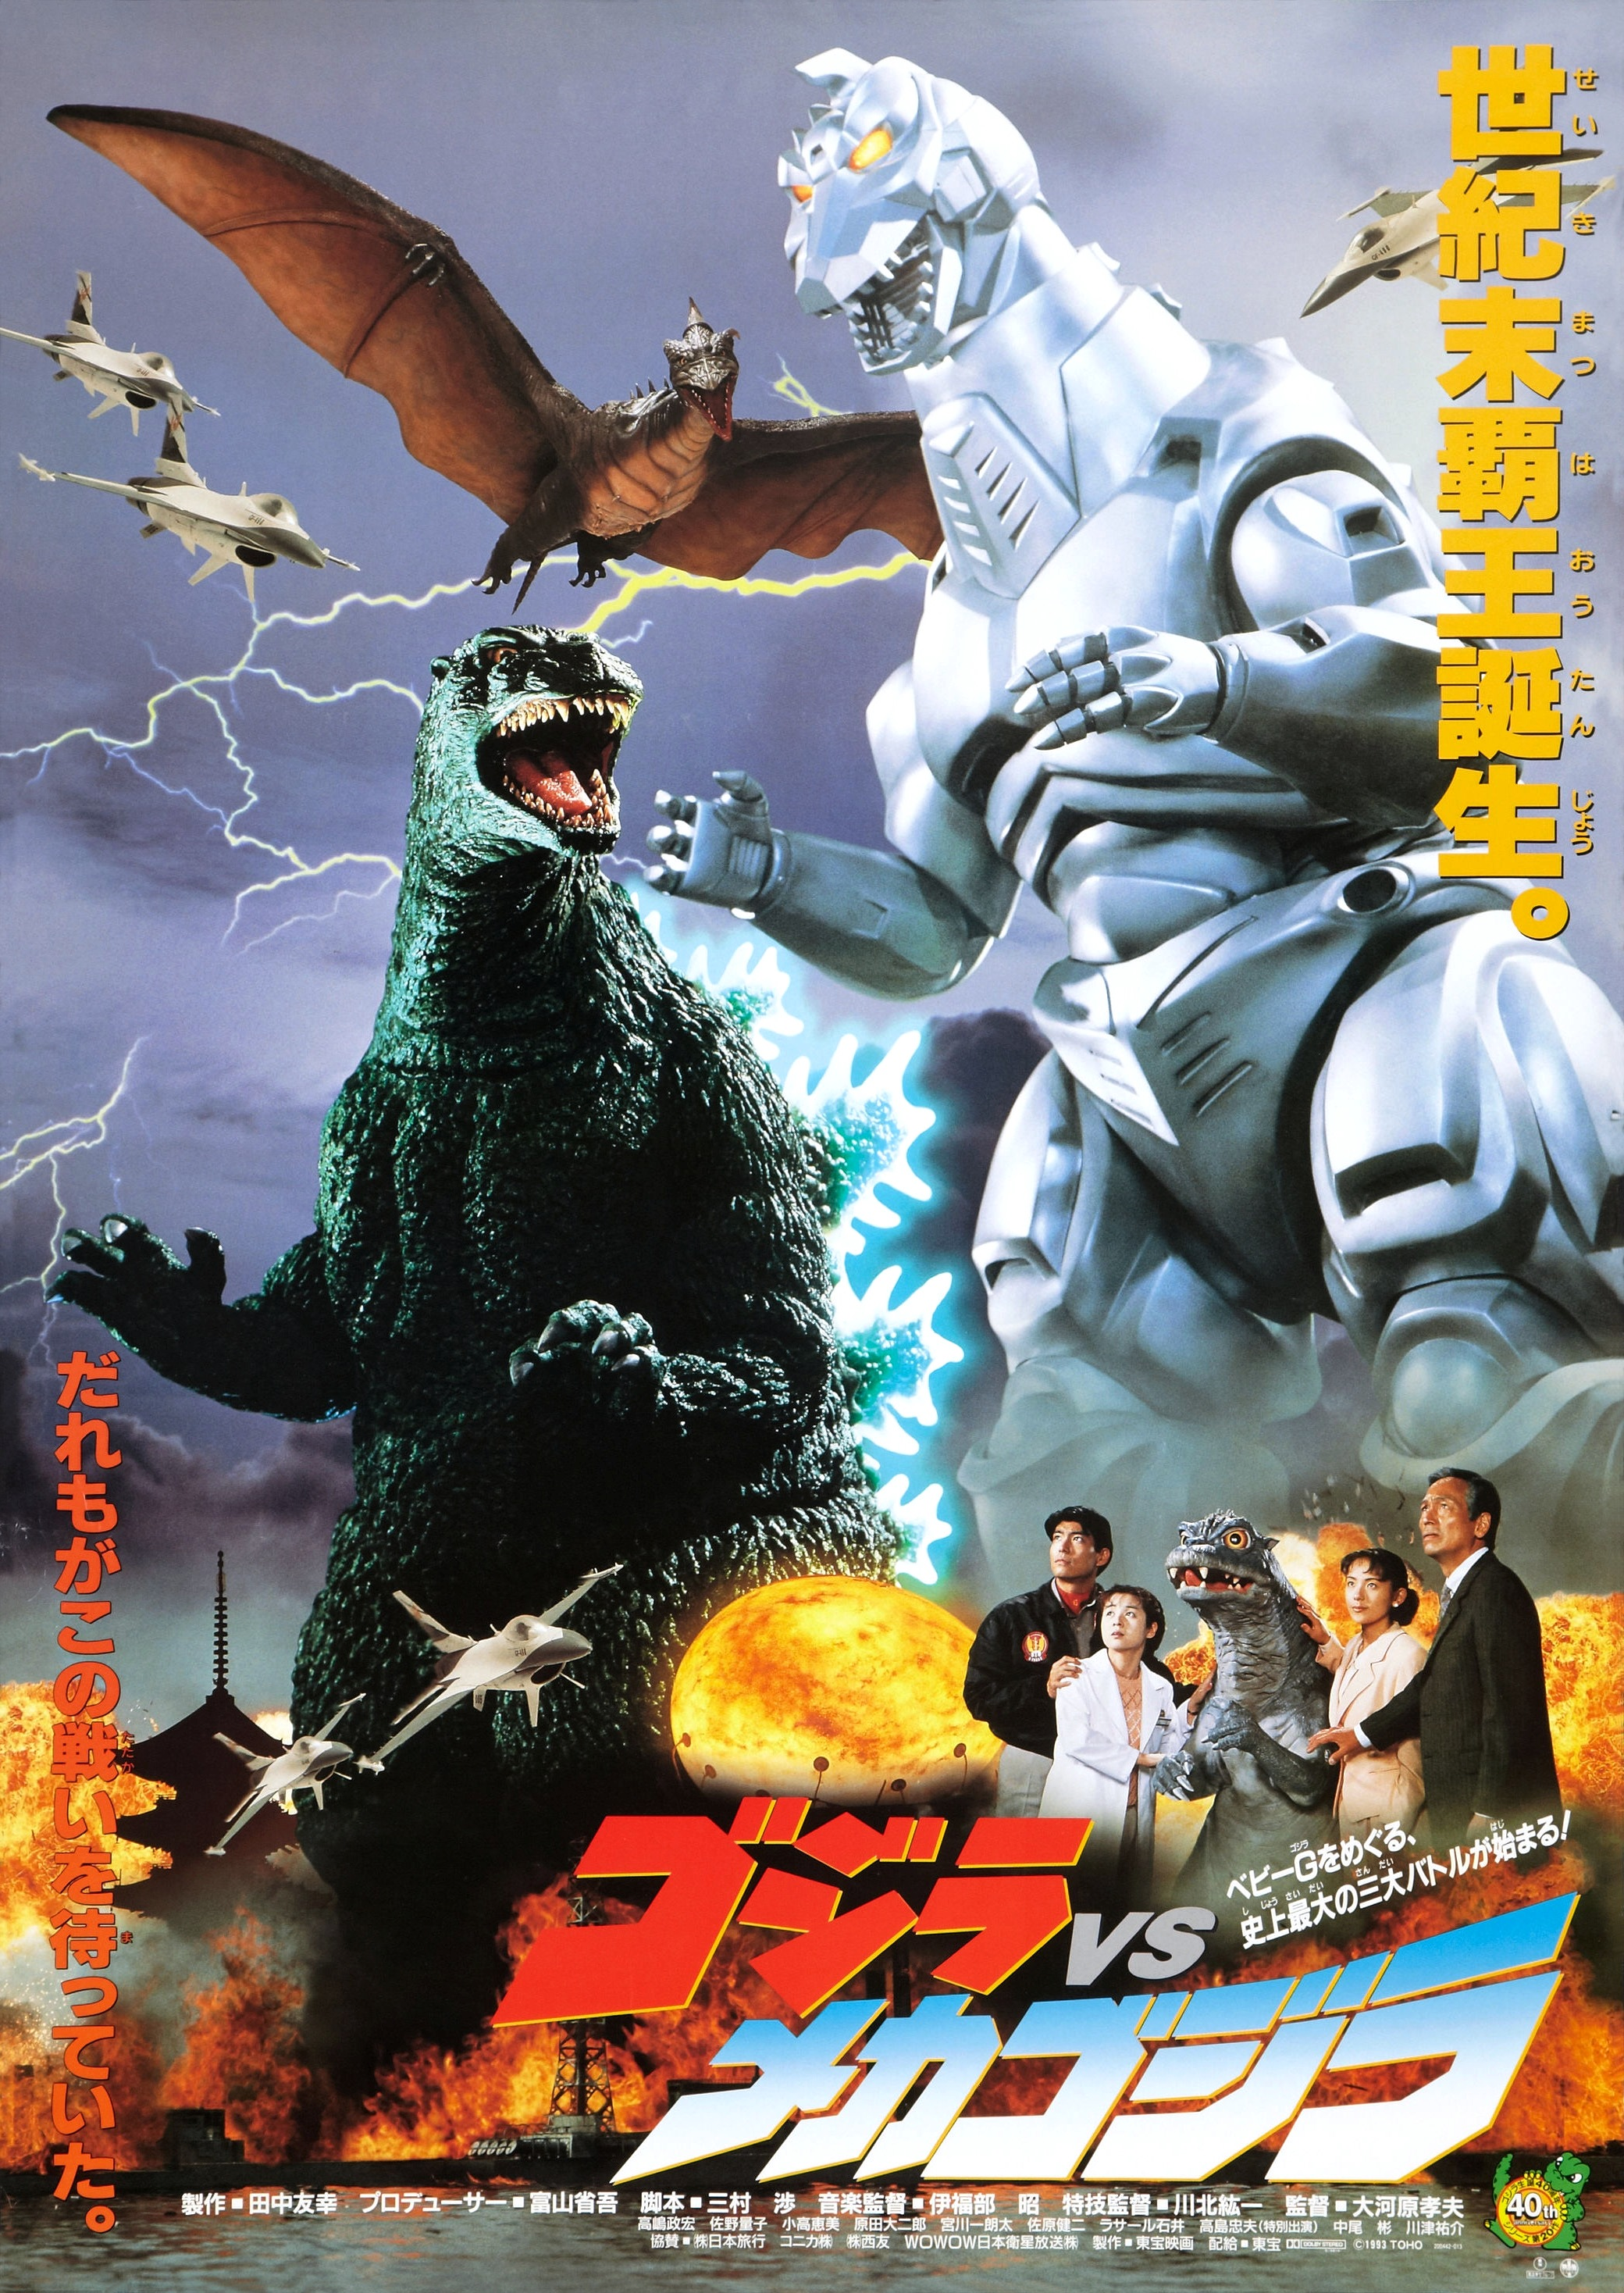 http://vignette1.wikia.nocookie.net/godzilla/images/1/17/Godzilla-vs-mechagodzilla-movie-poster-1020433270.jpg/revision/latest?cb=20120521162316